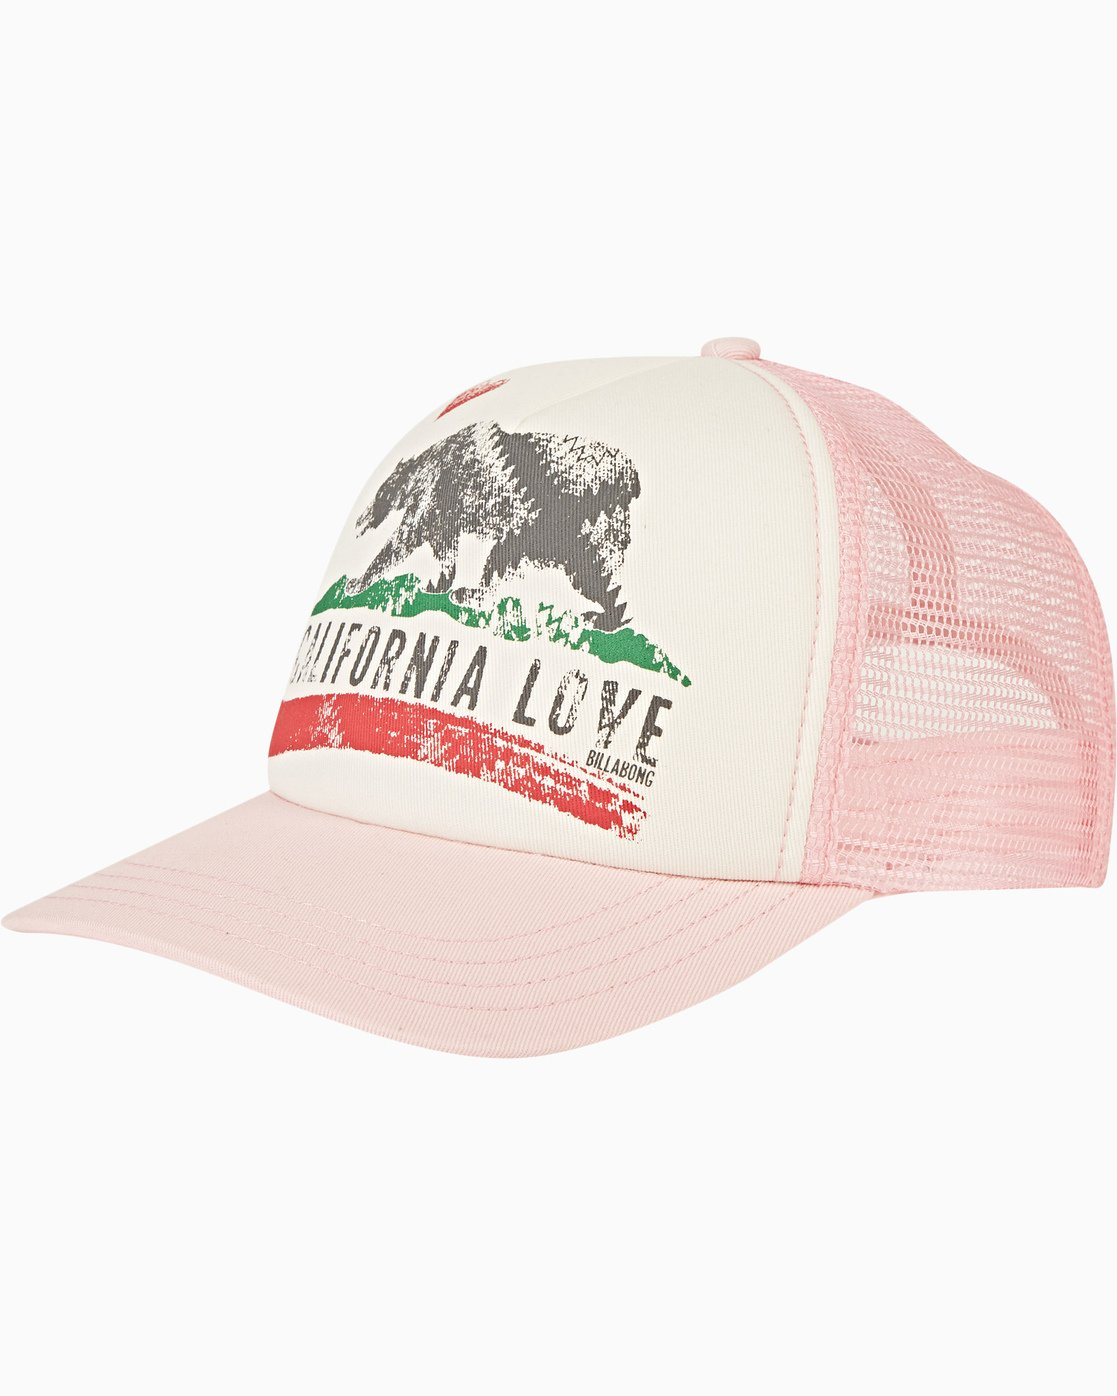 bc8a1ce27 Girls' Pitstop Trucker Hat